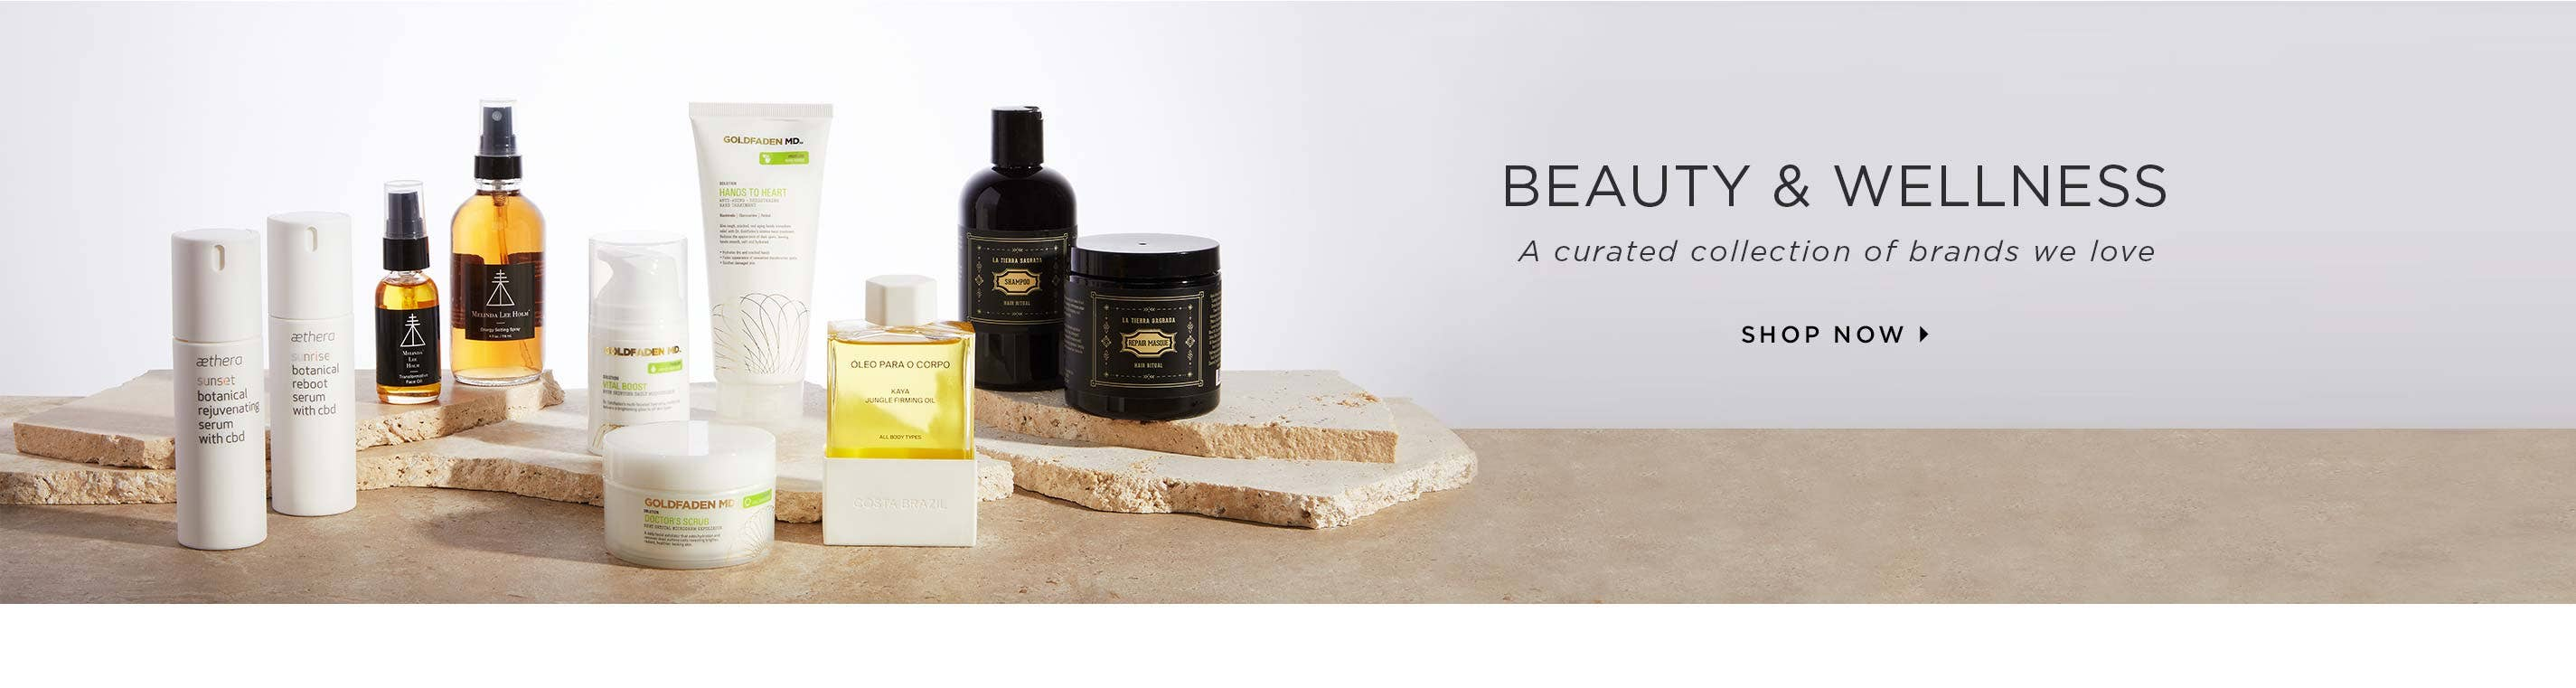 Beauty & Wellness - A curated collection of brands we love. Shop Now.